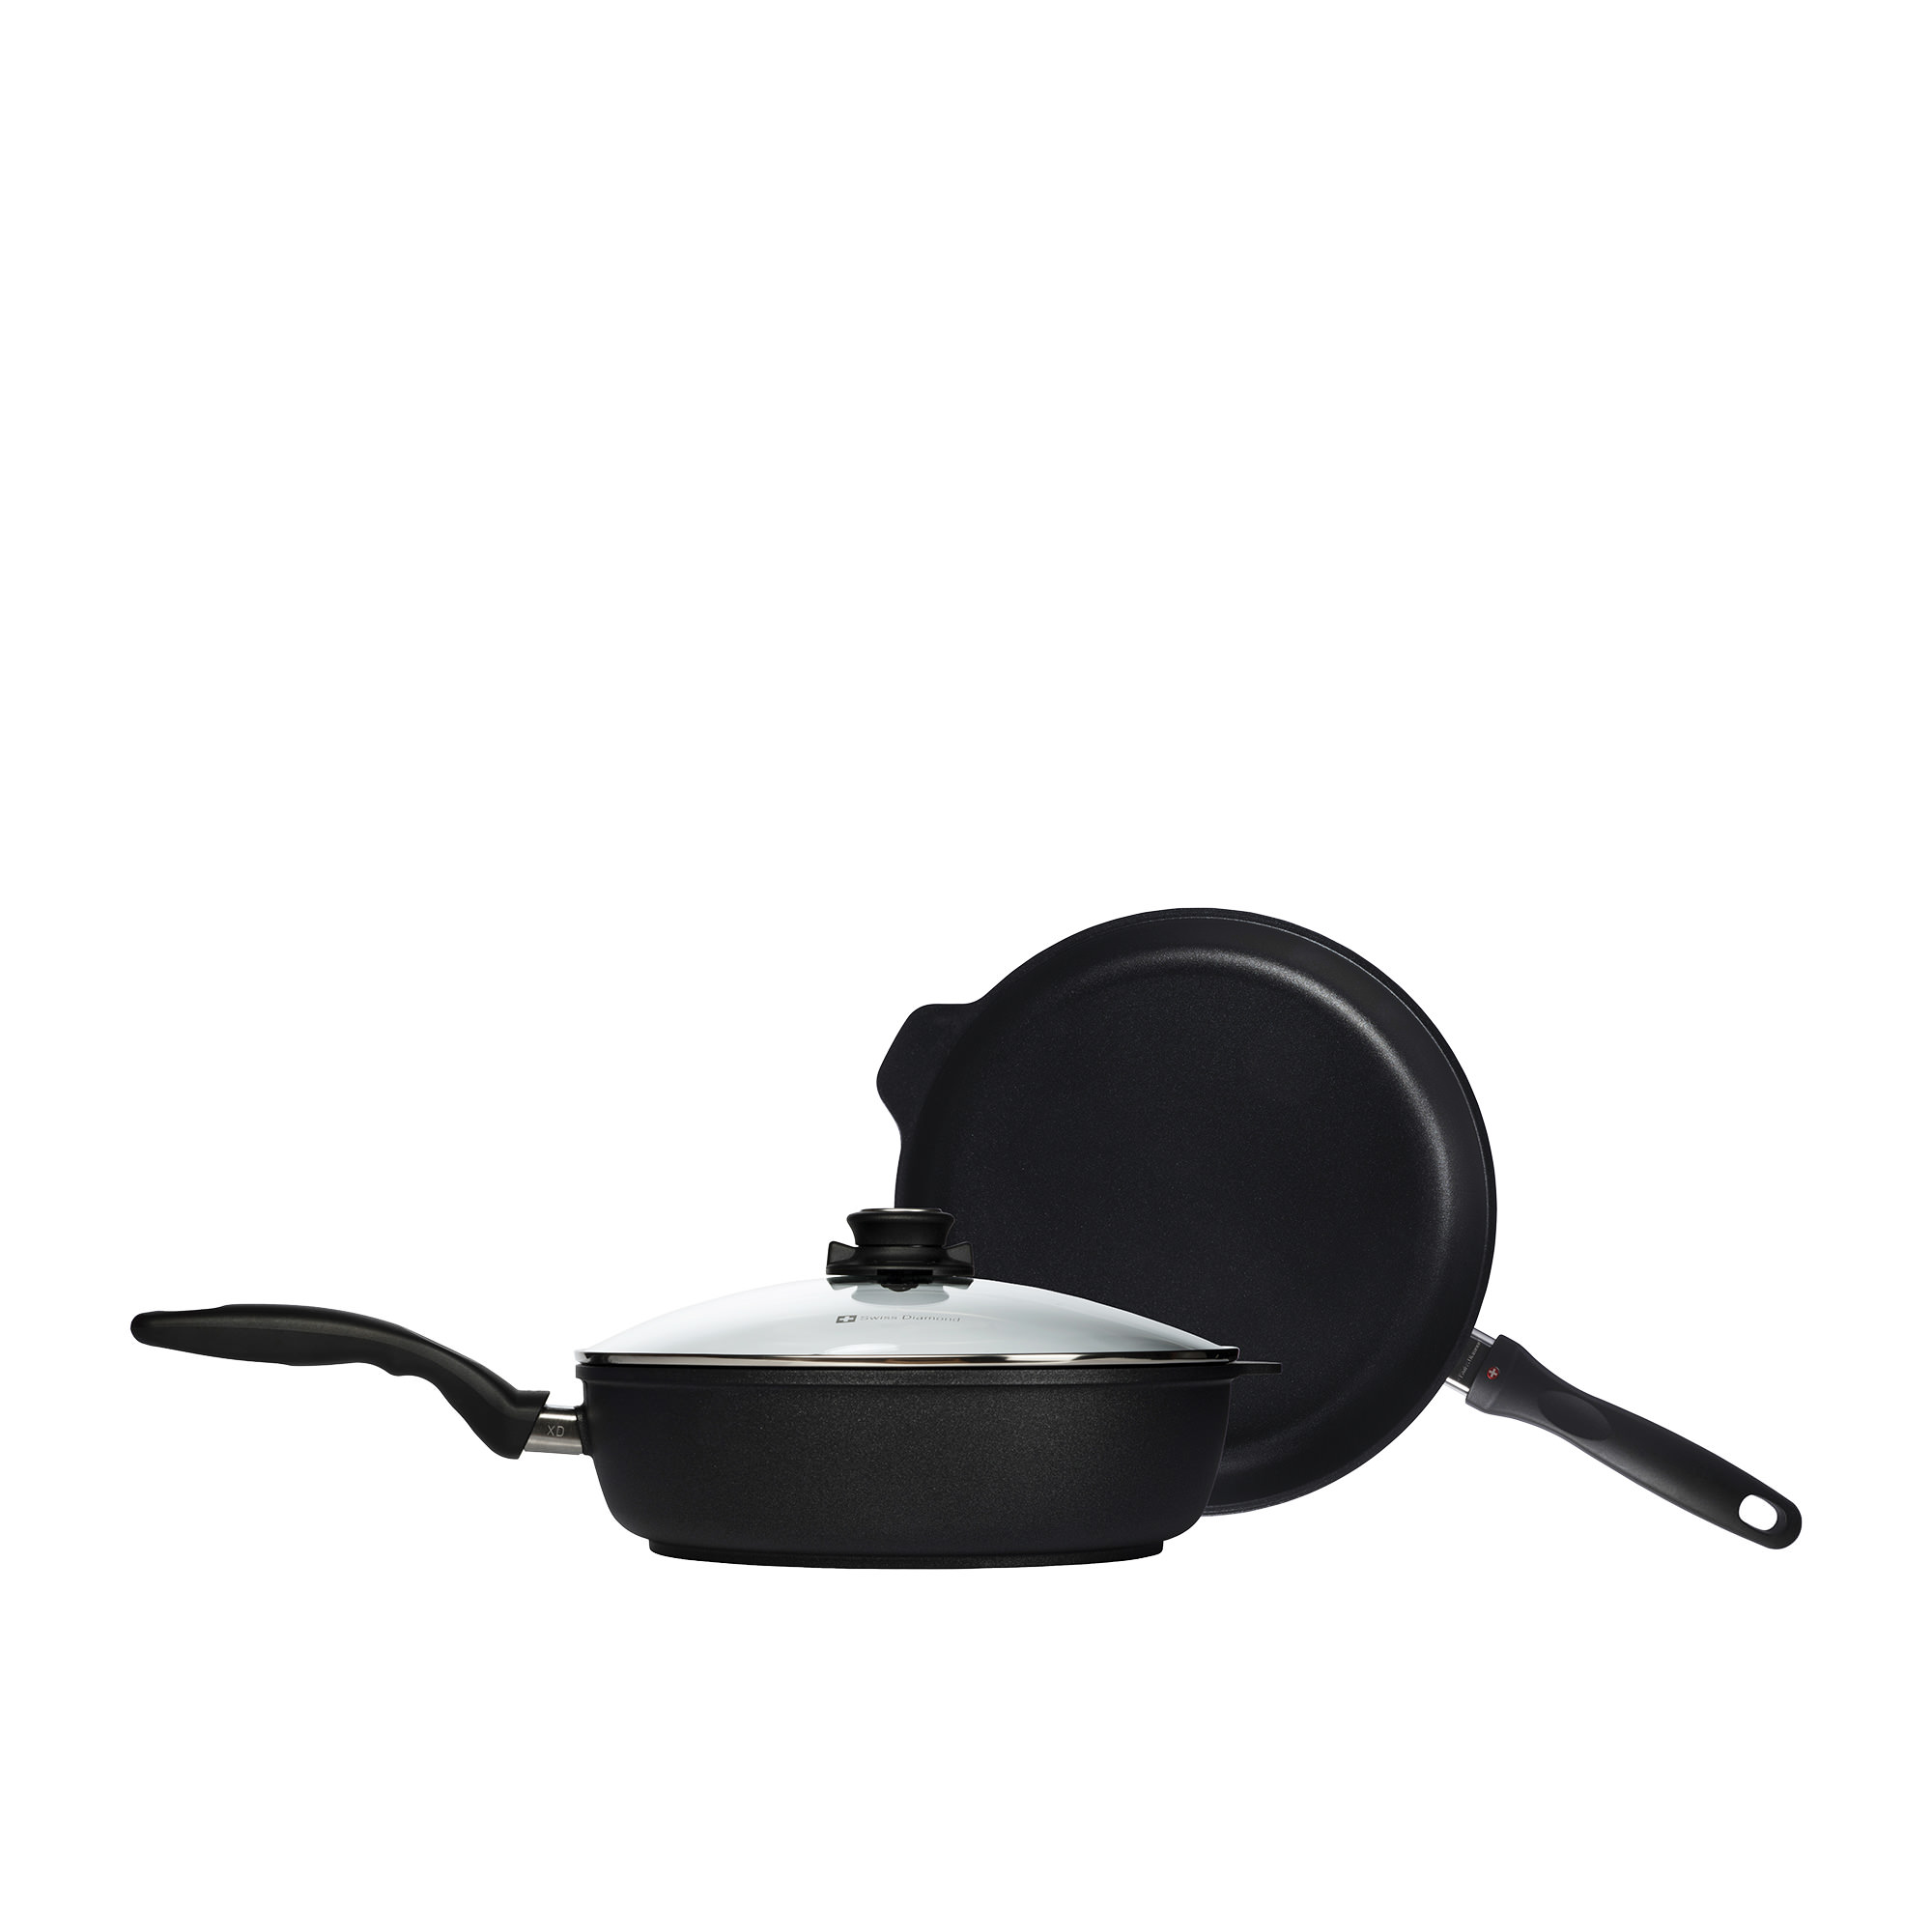 Swiss Diamond Classic XD Frypan & Saute Pan Set 28cm